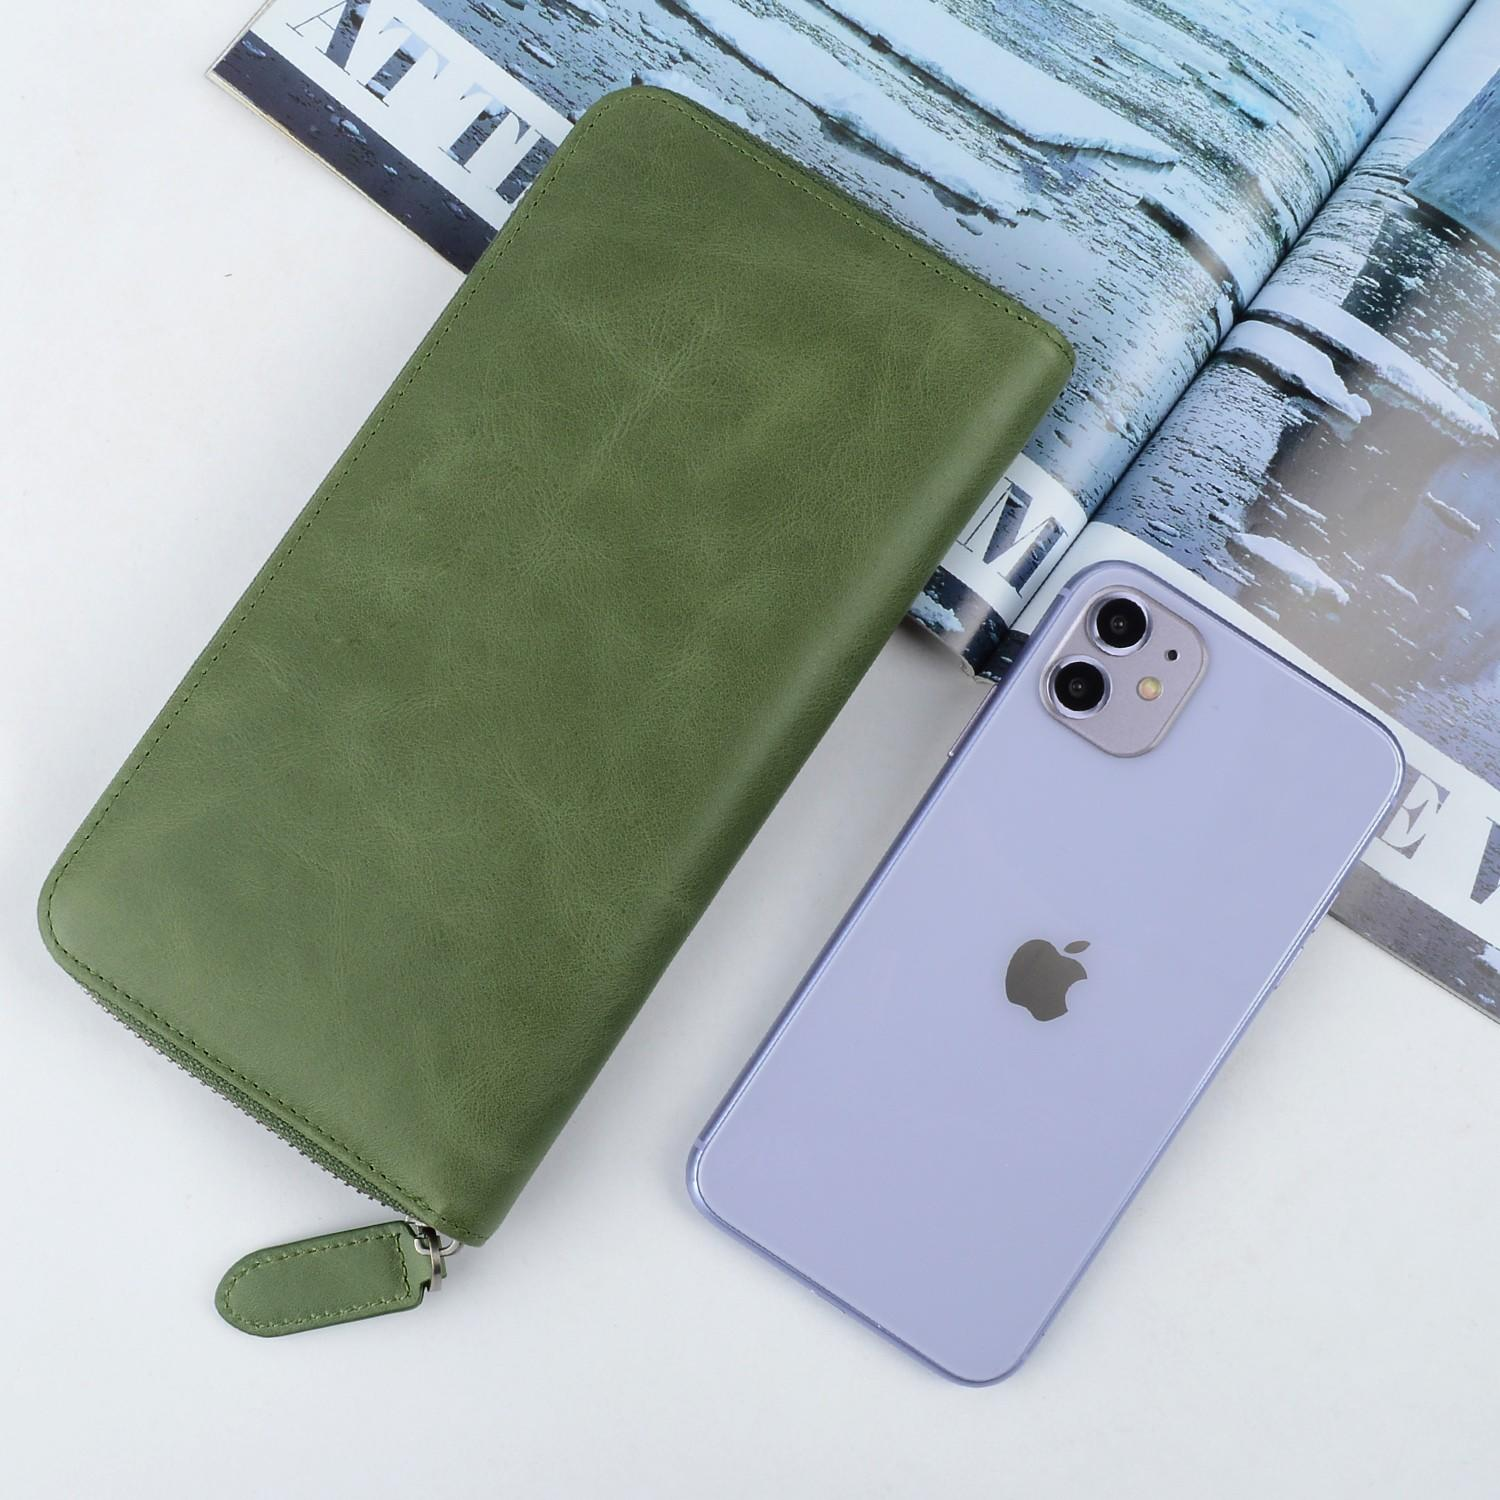 customized leather credit card case online for phone XS Max